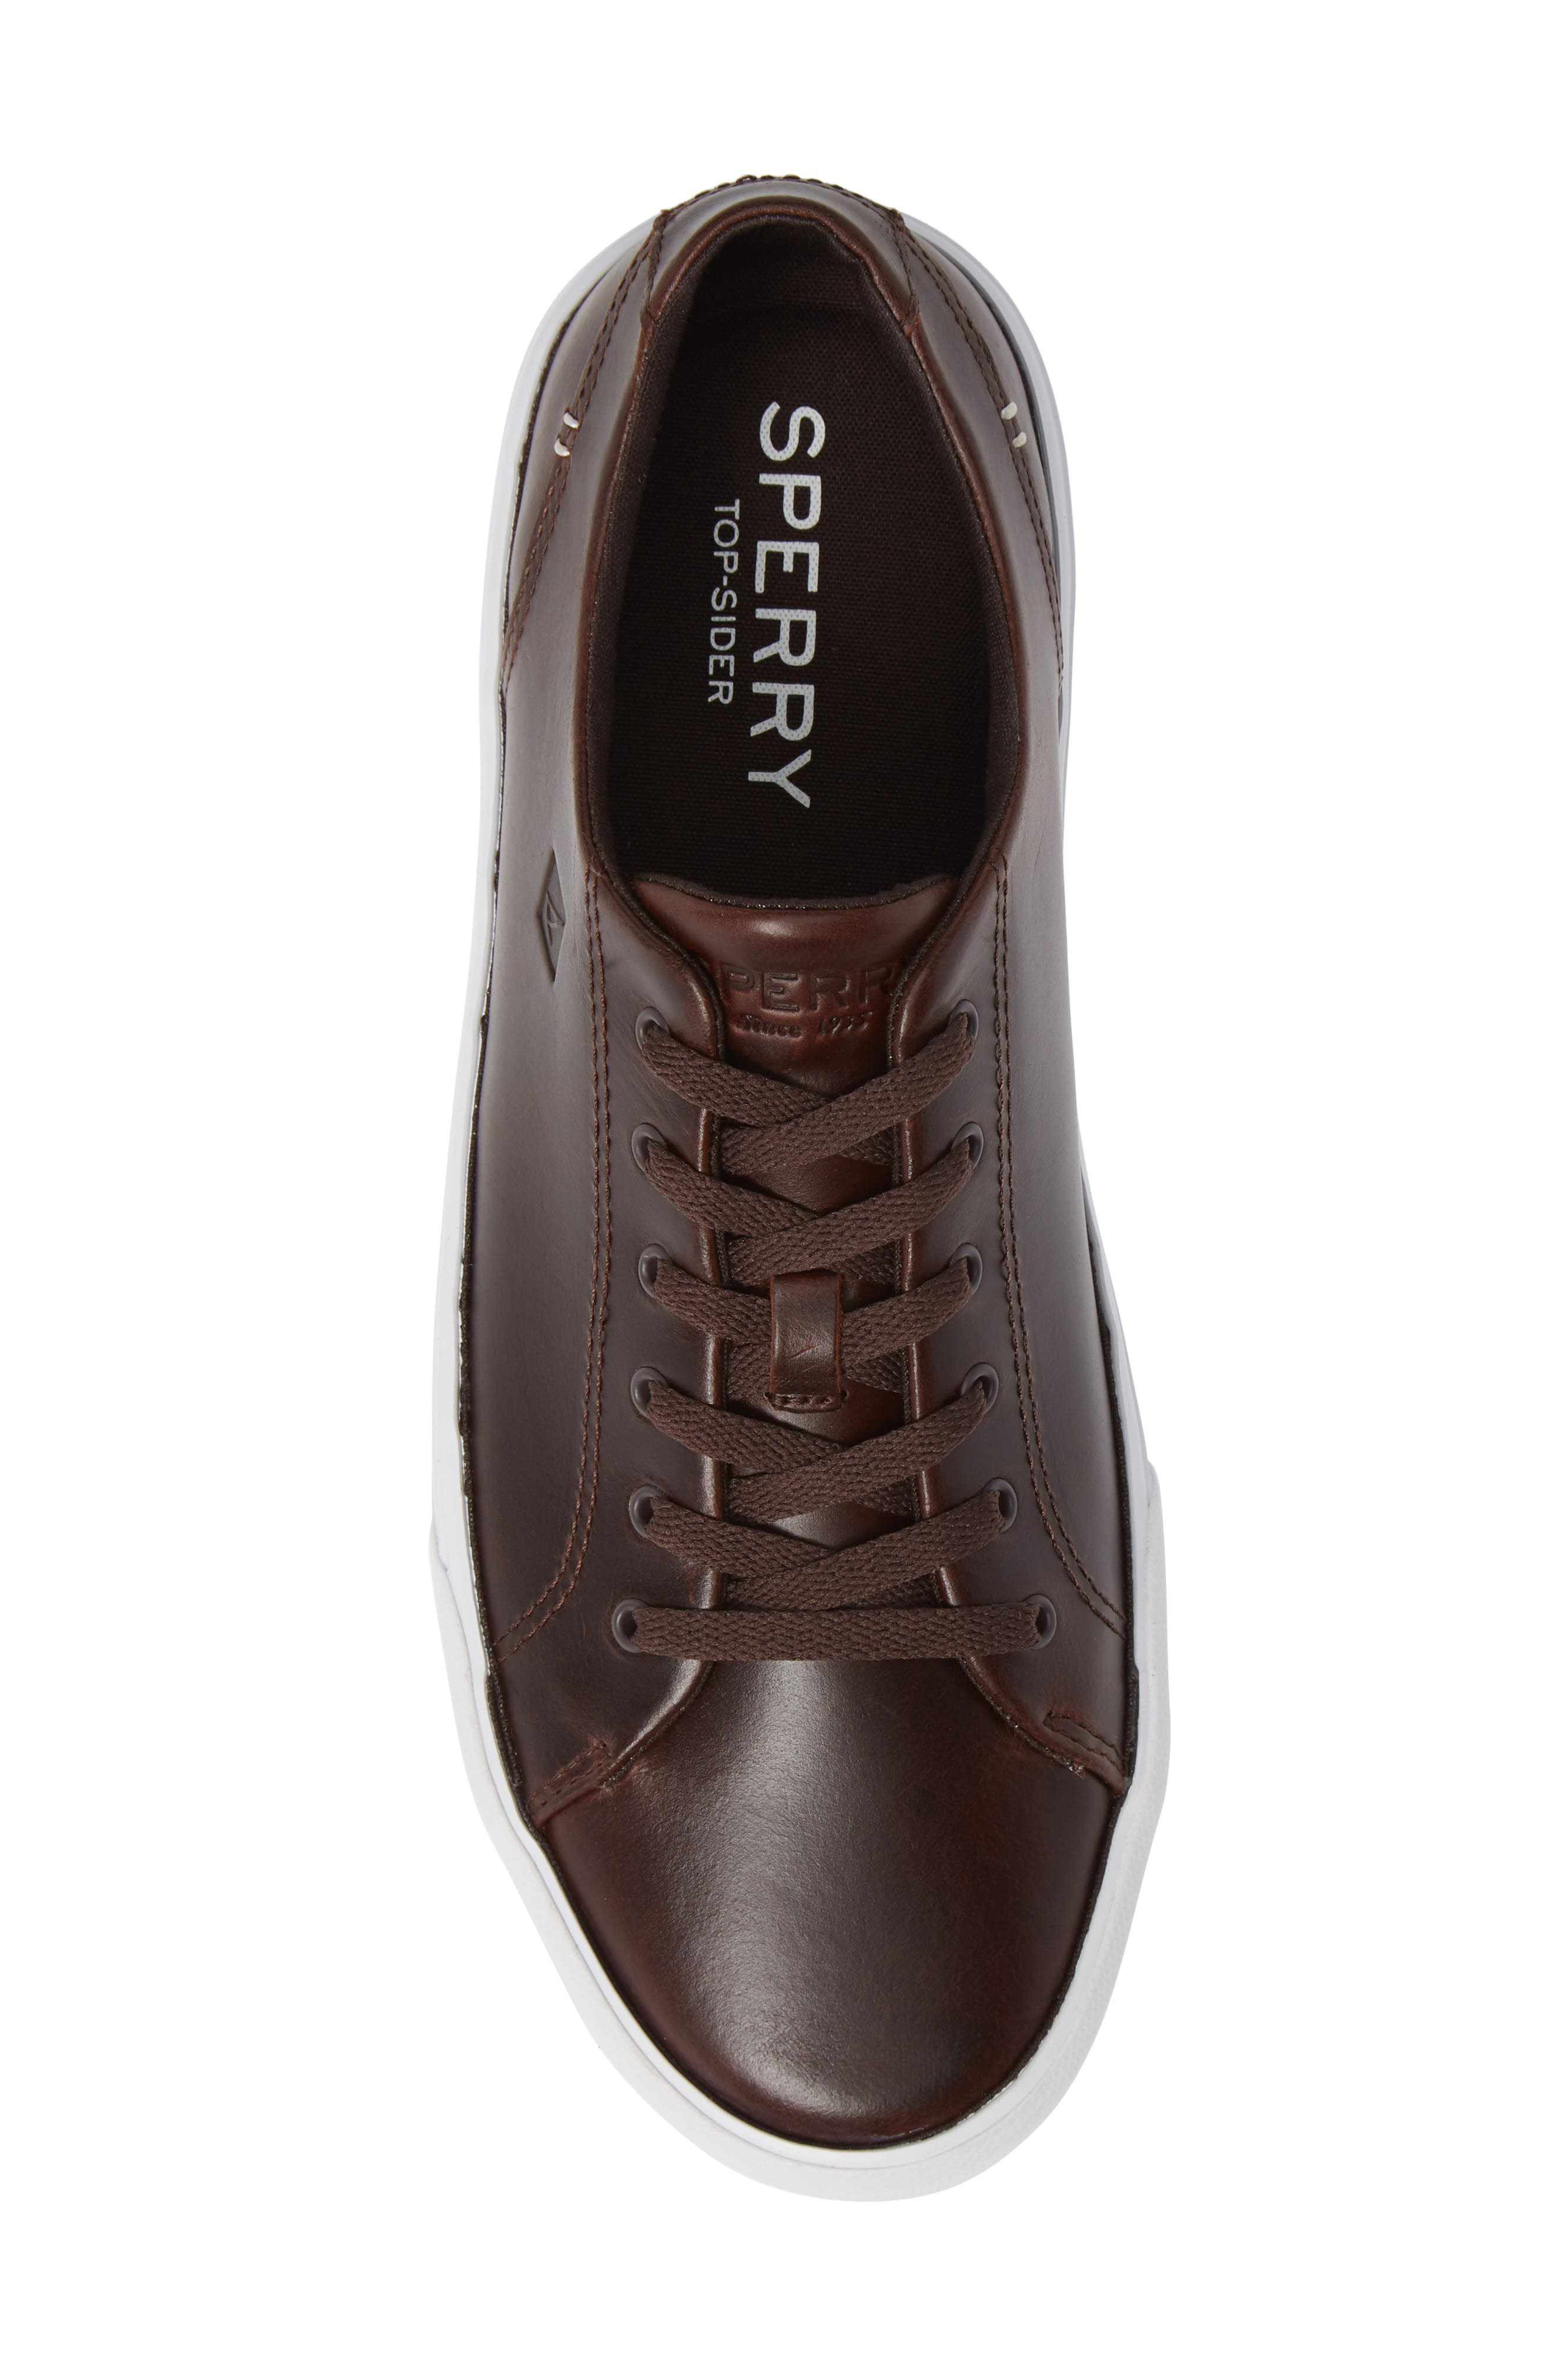 SPERRY, Striper II Sneaker, Alternate thumbnail 5, color, AMARETTO LEATHER